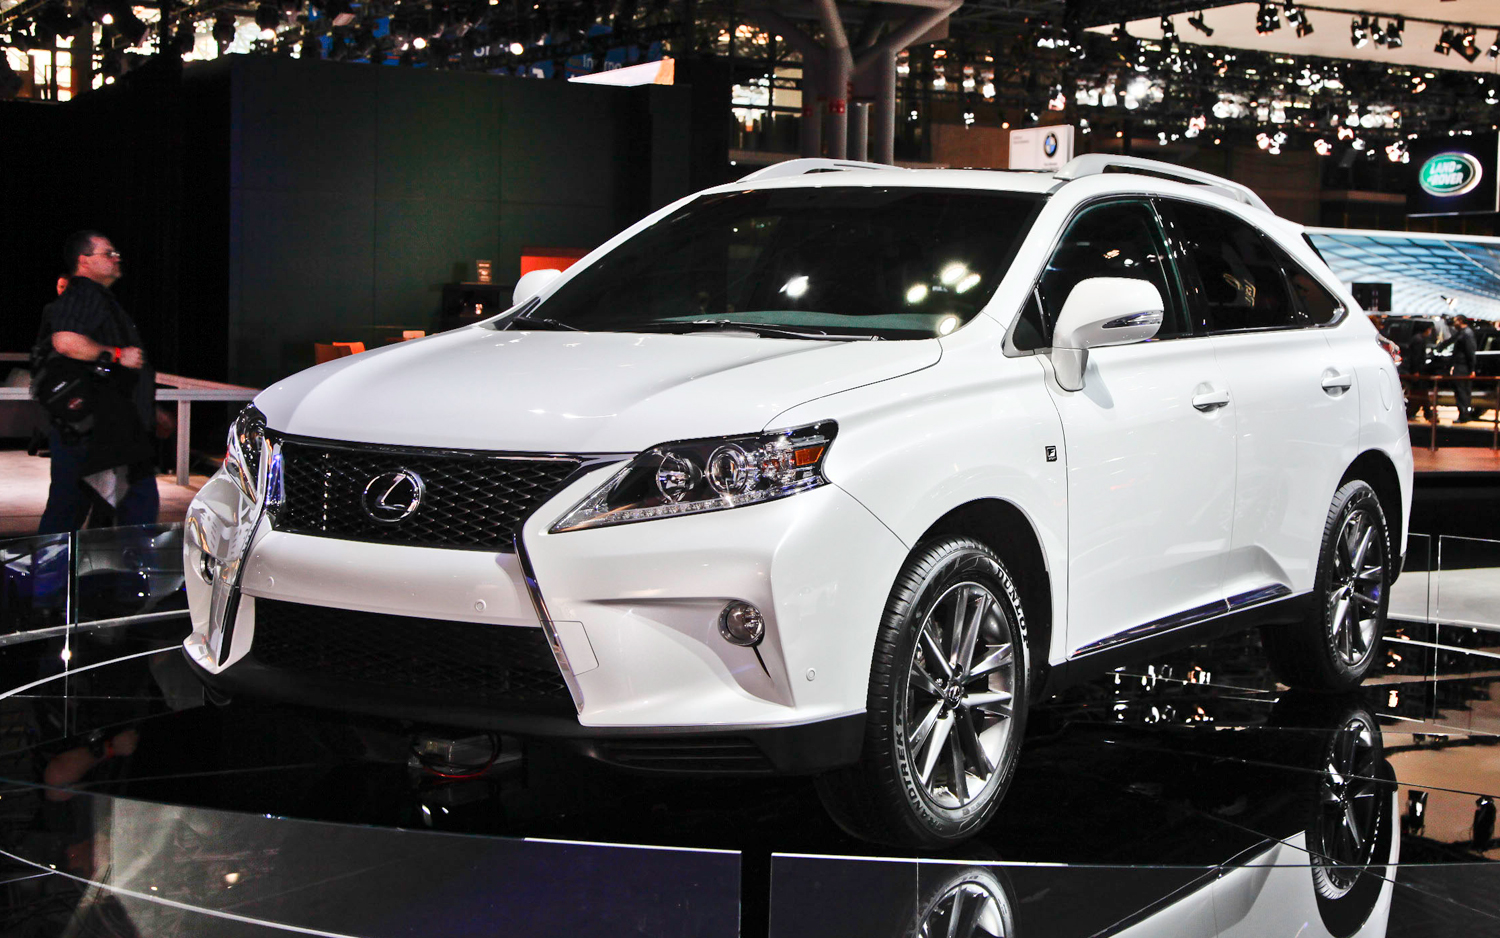 motor facelifted events first show look buttons geneva hybrid rx event and coverage lexus prevnext more